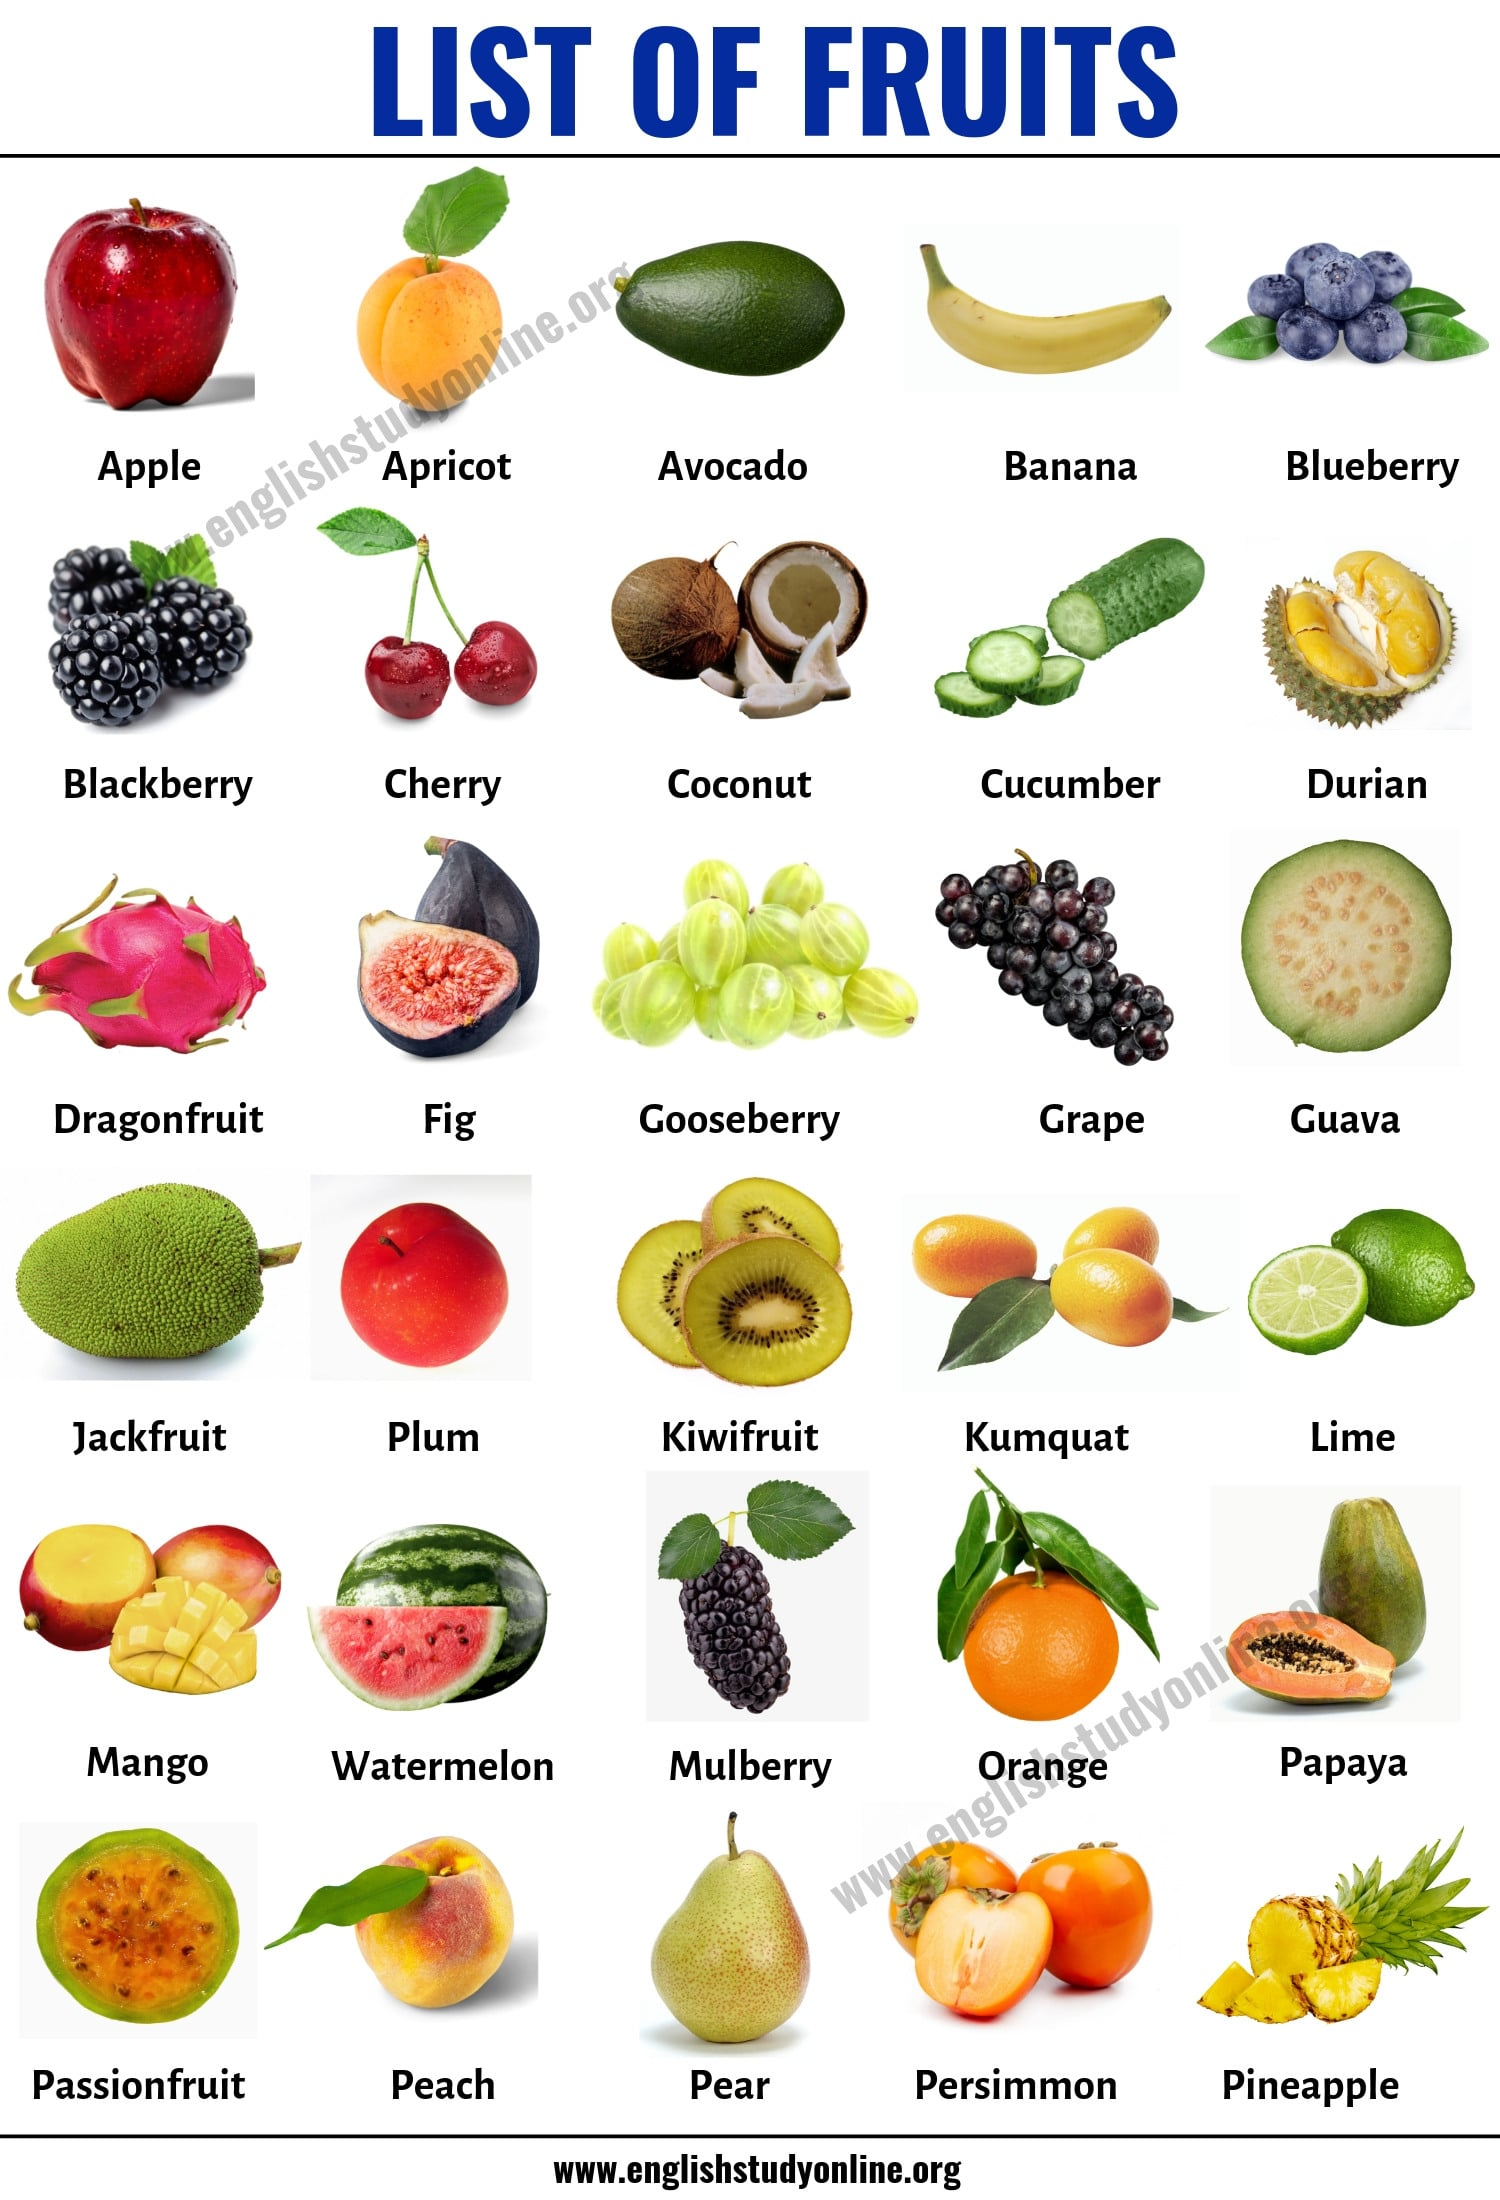 List of Fruits